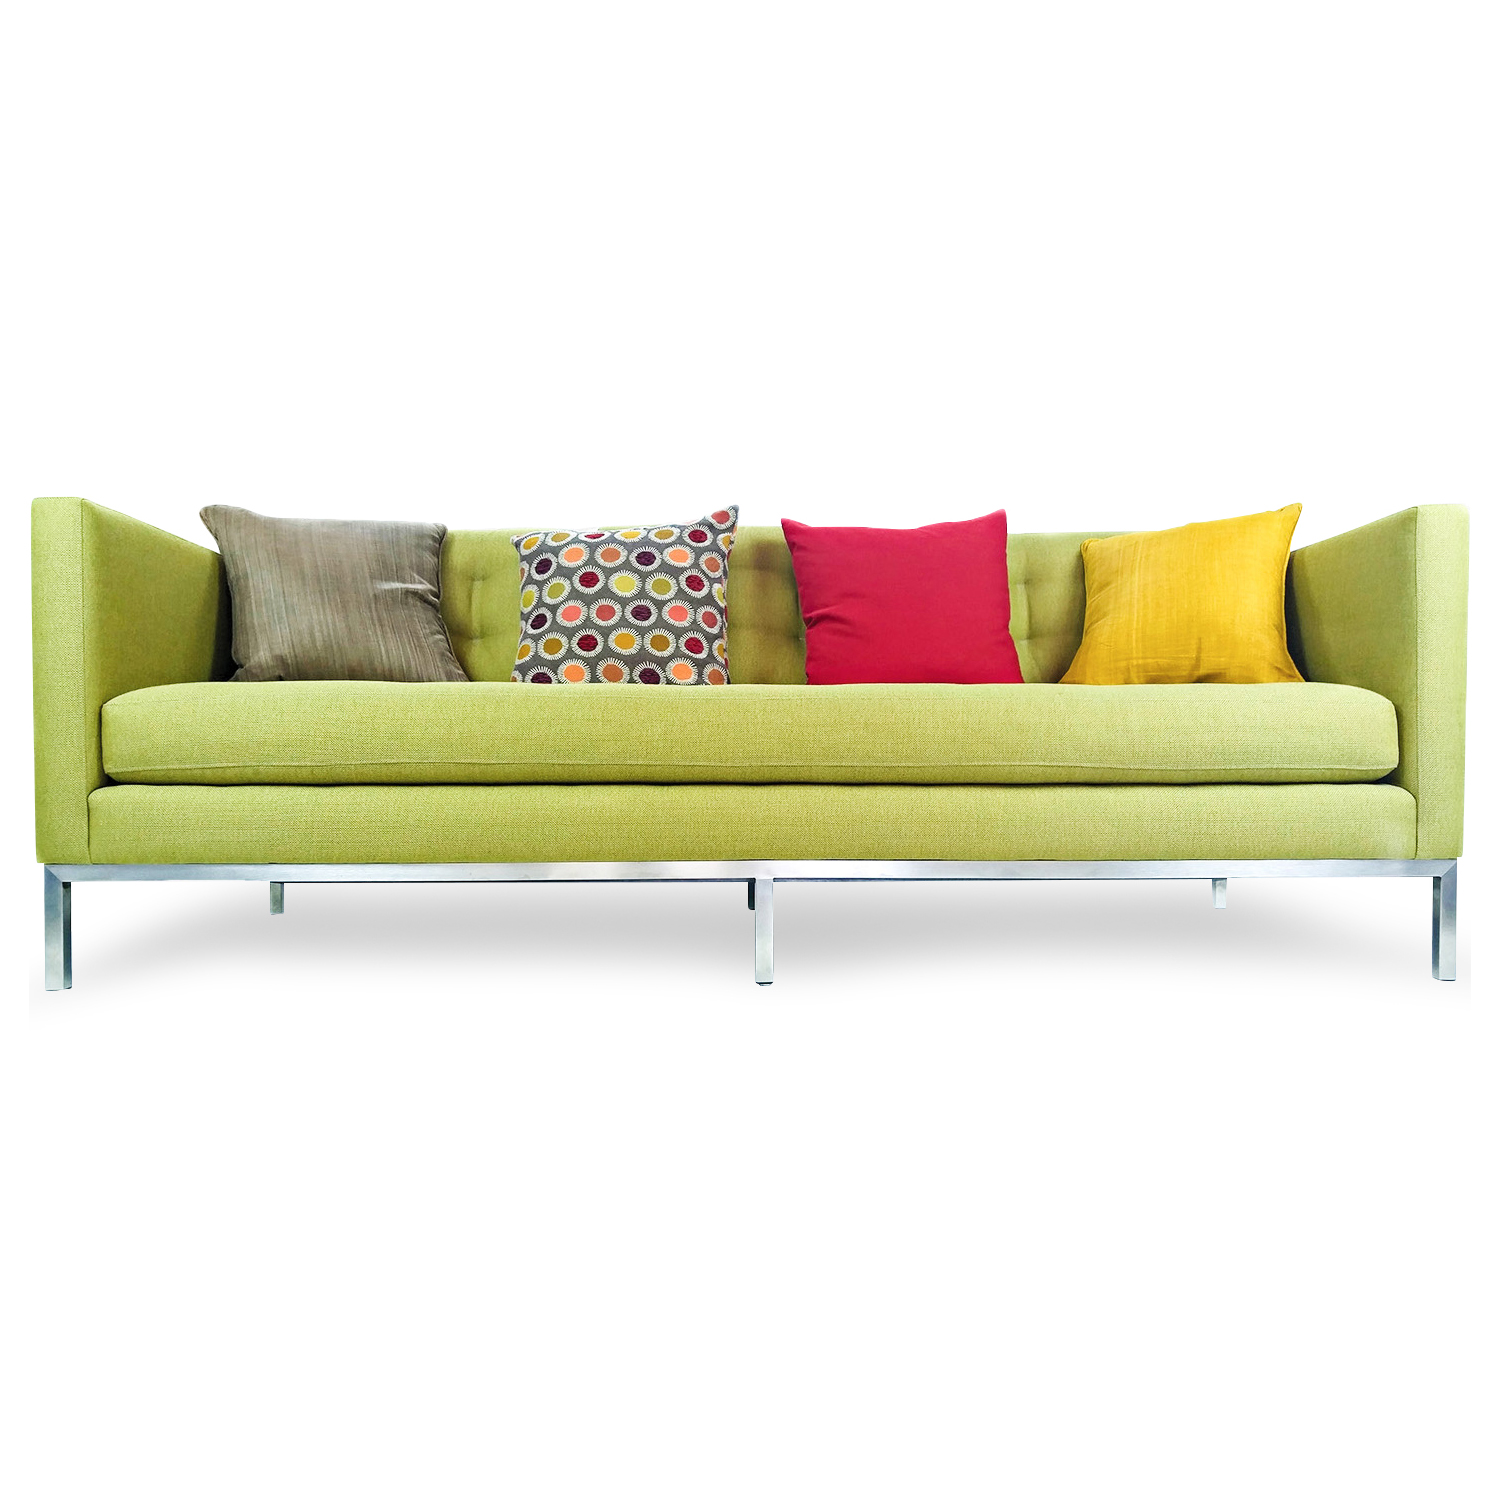 Max Home Furniture Macy's Chloe Tufted Sofa / Sofas